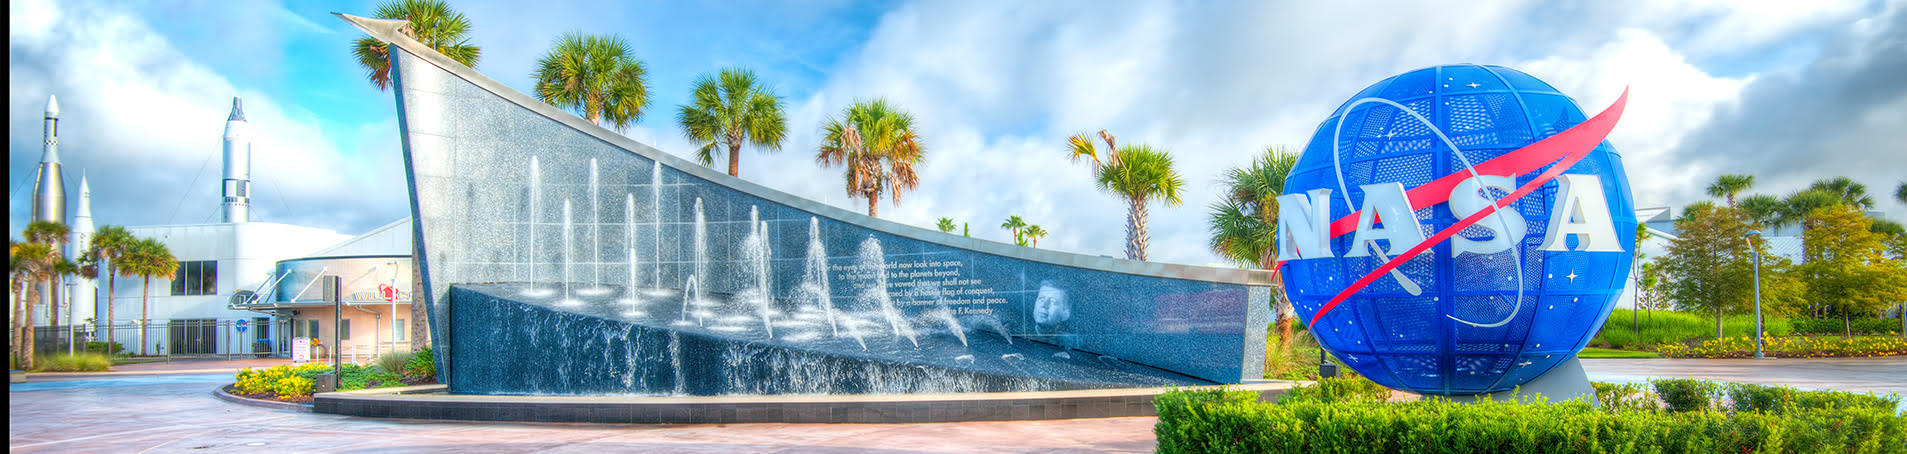 Image courtesy of Kennedy Space Center.